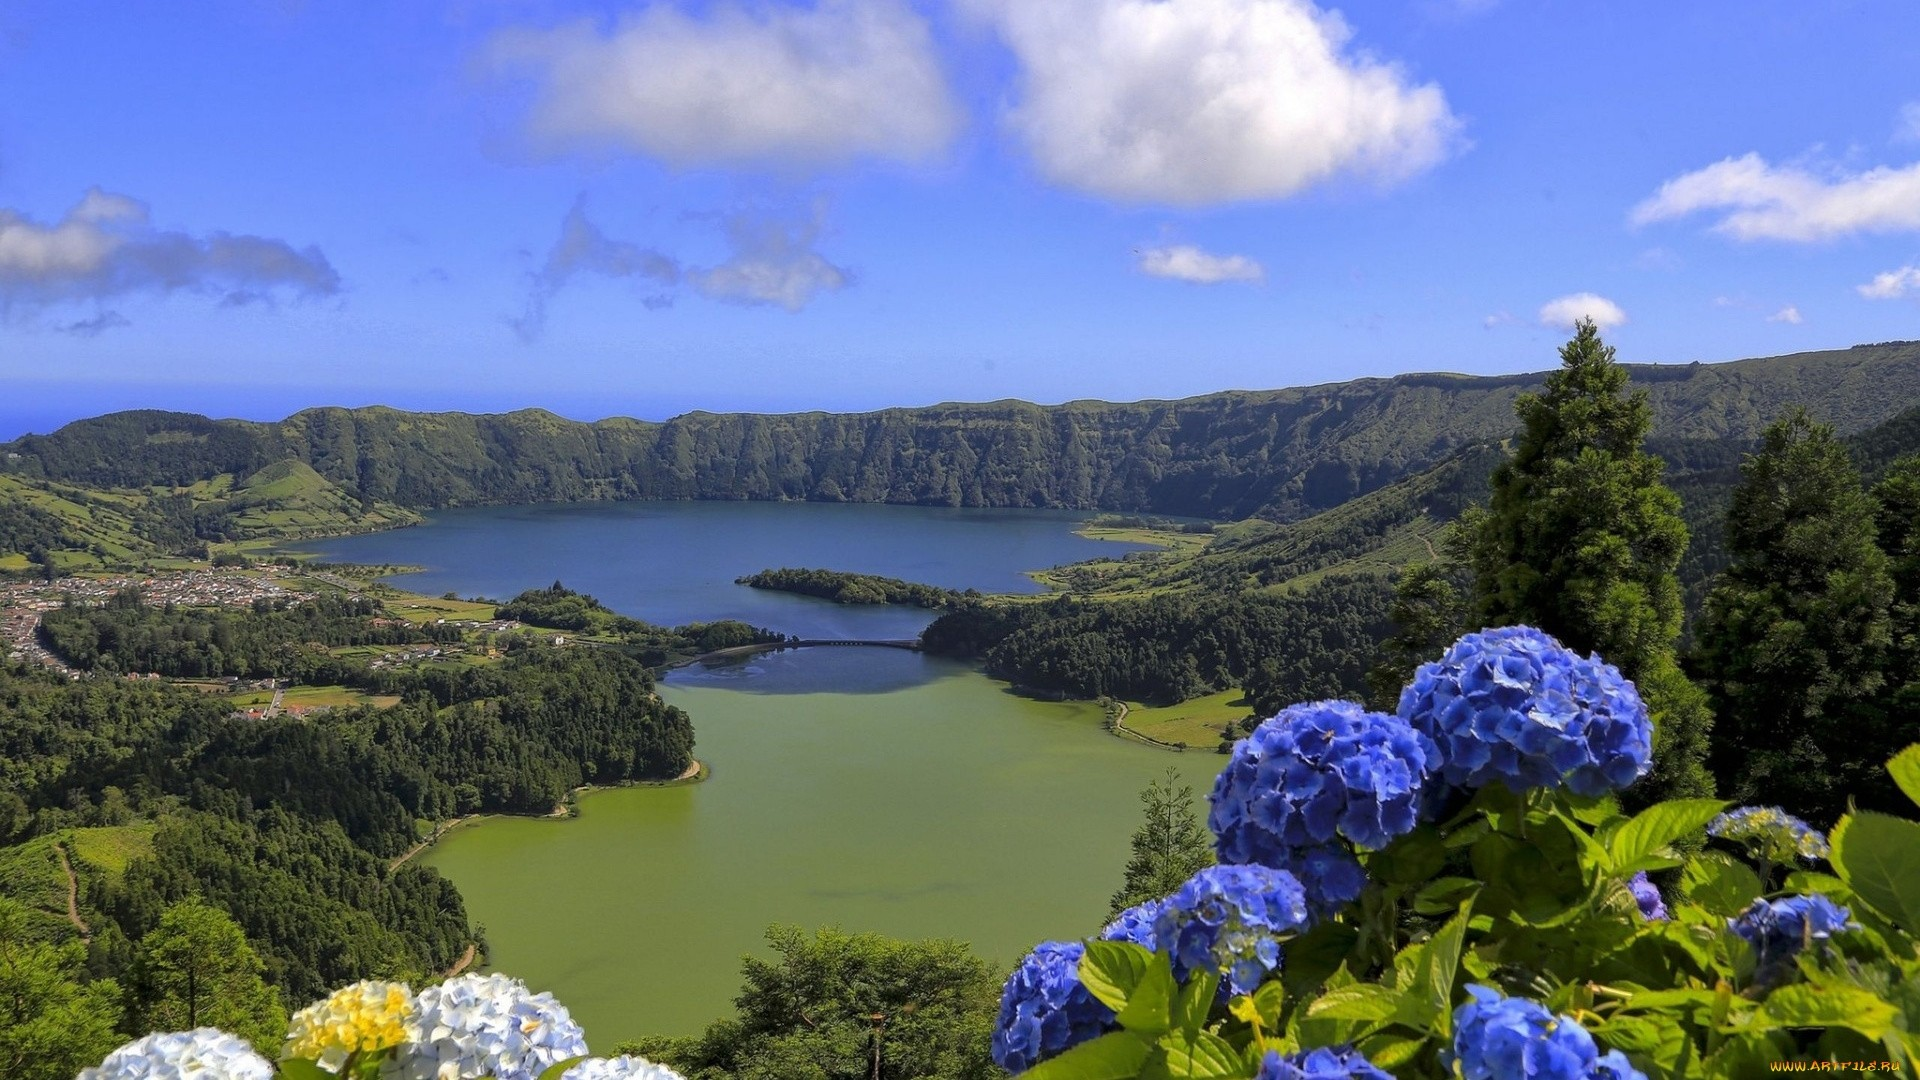 Azores Islands Pic